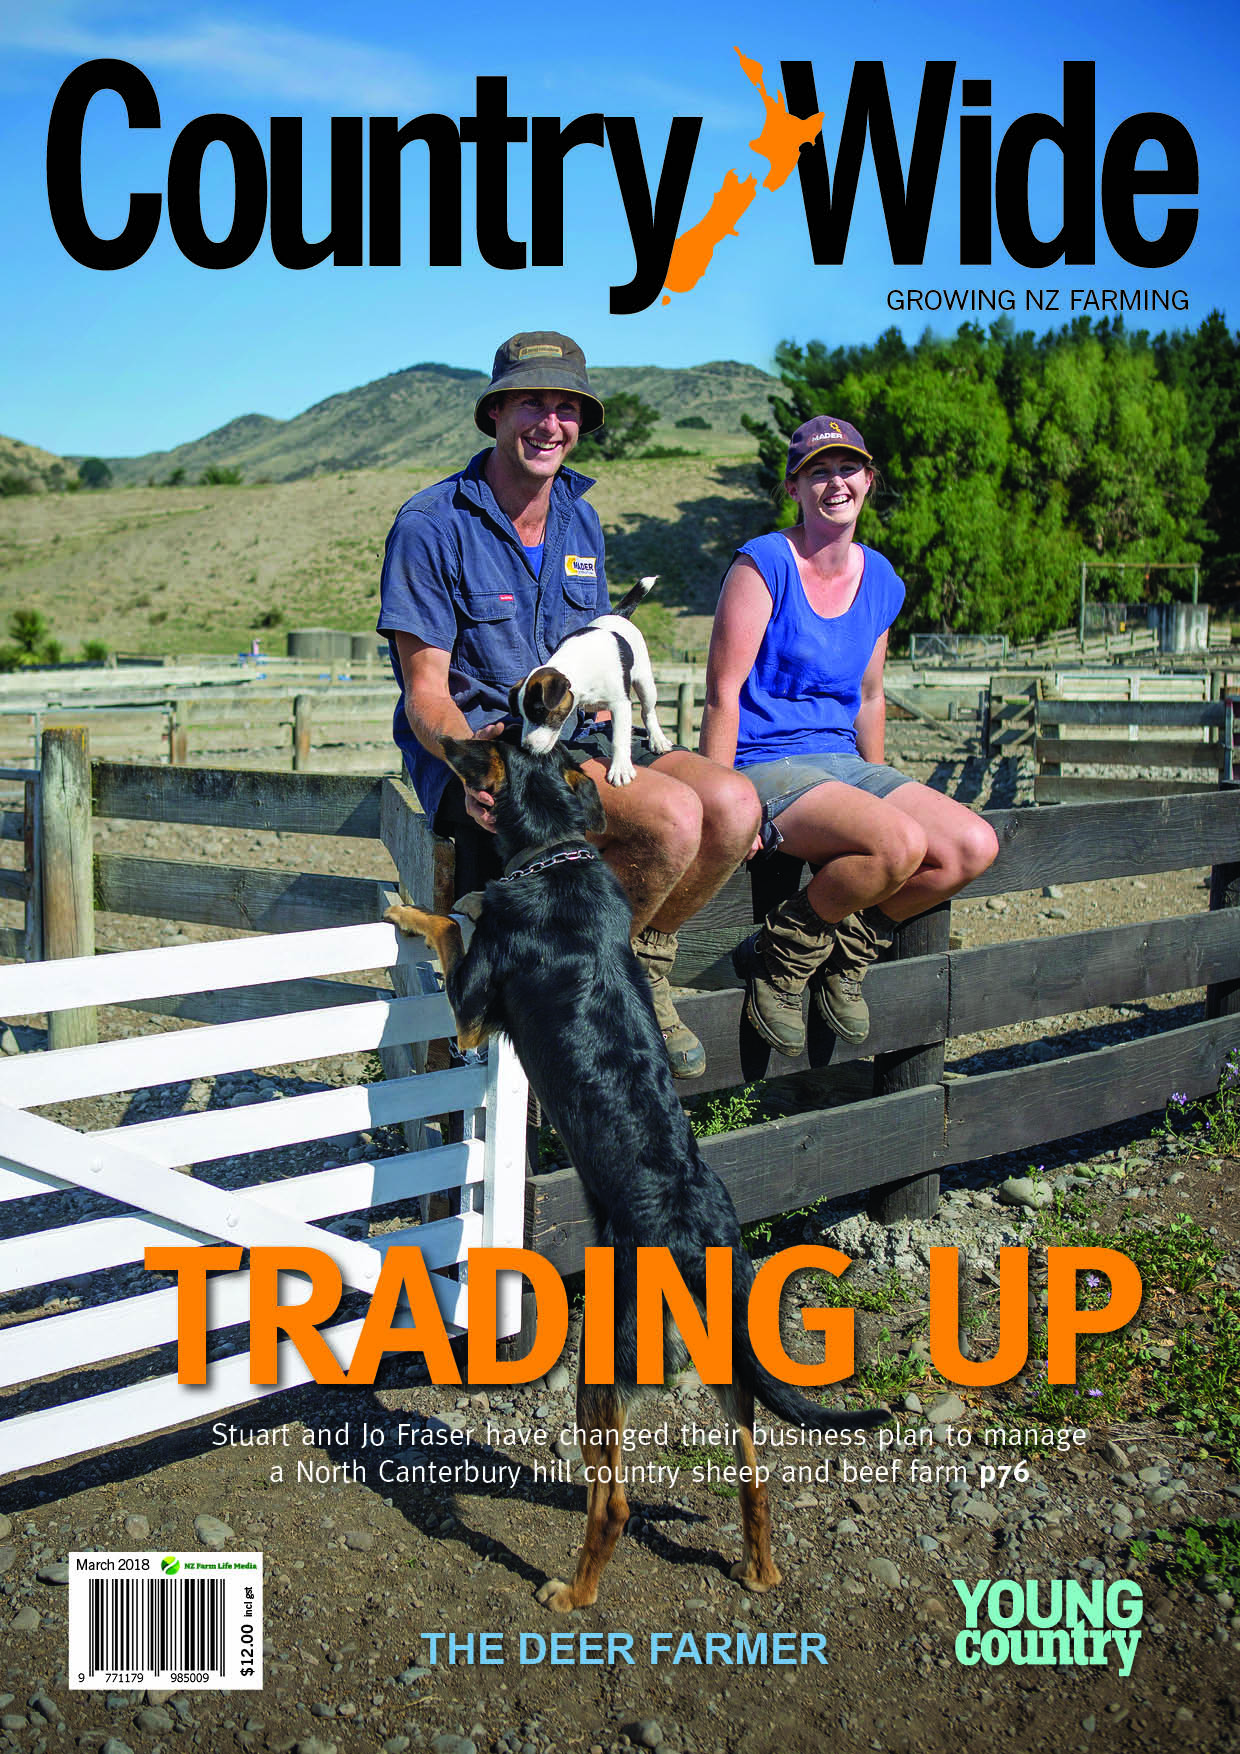 www.nzfarmlife.co.nz/shop